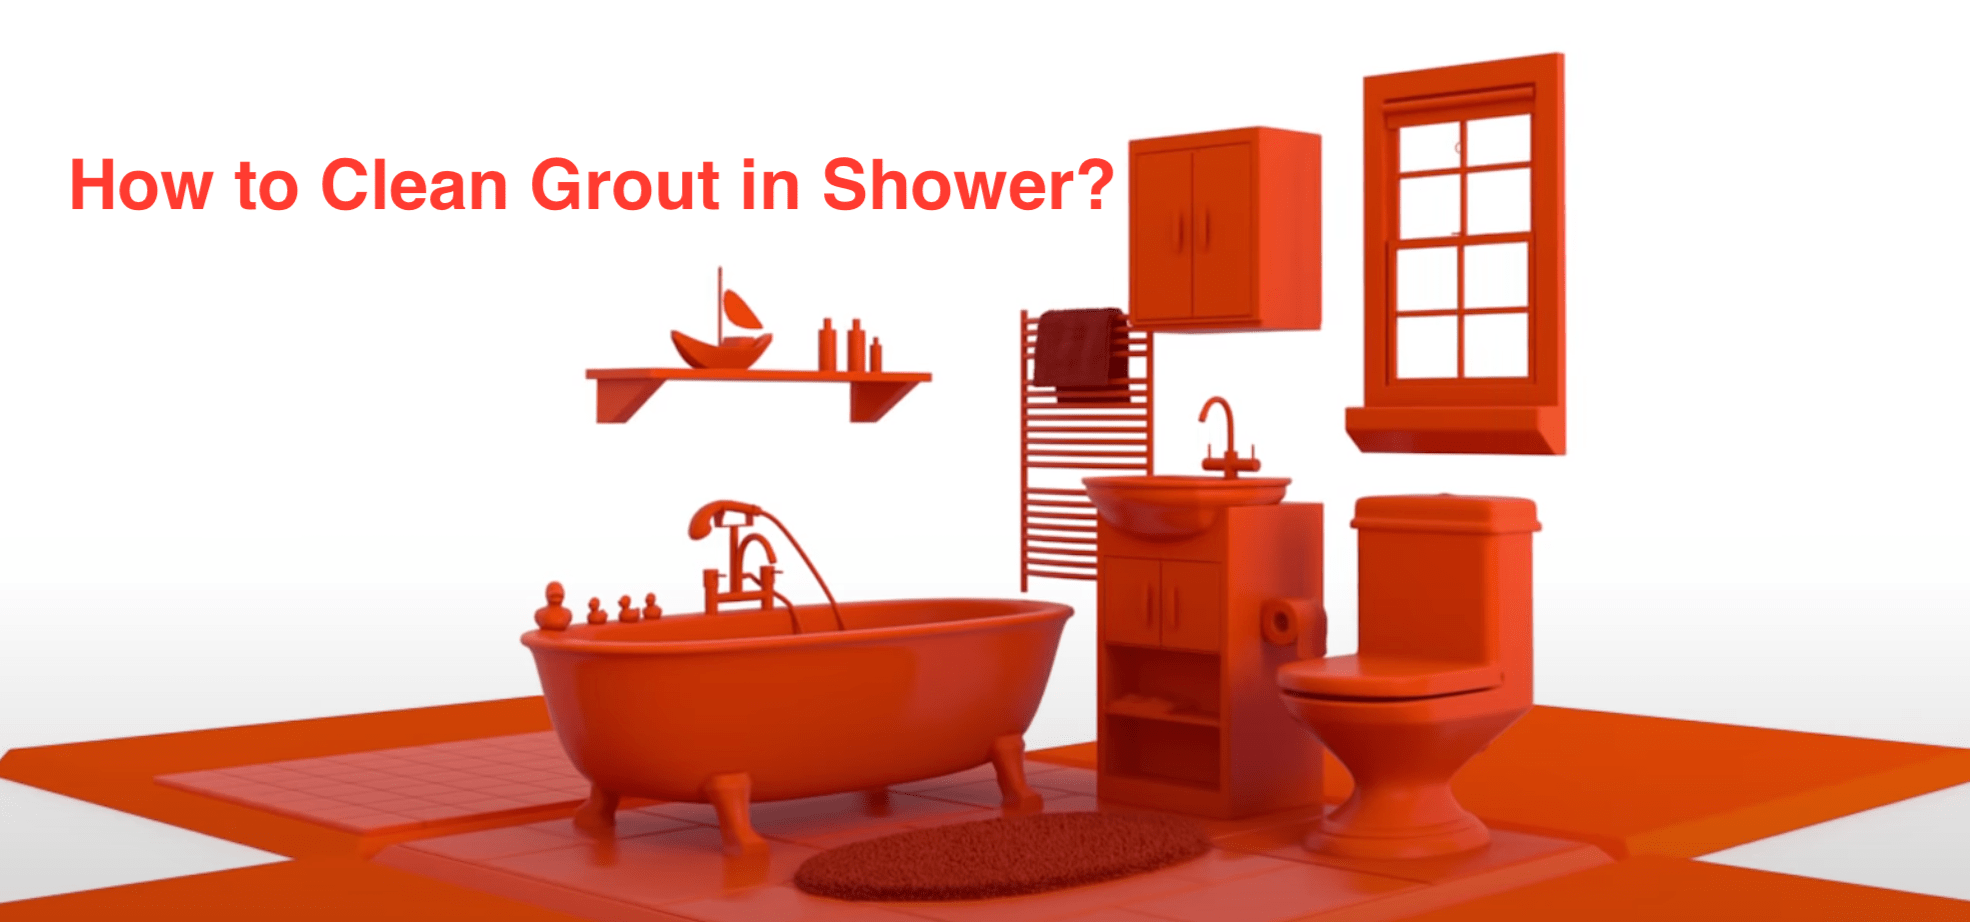 How to Clean Grout in Shower